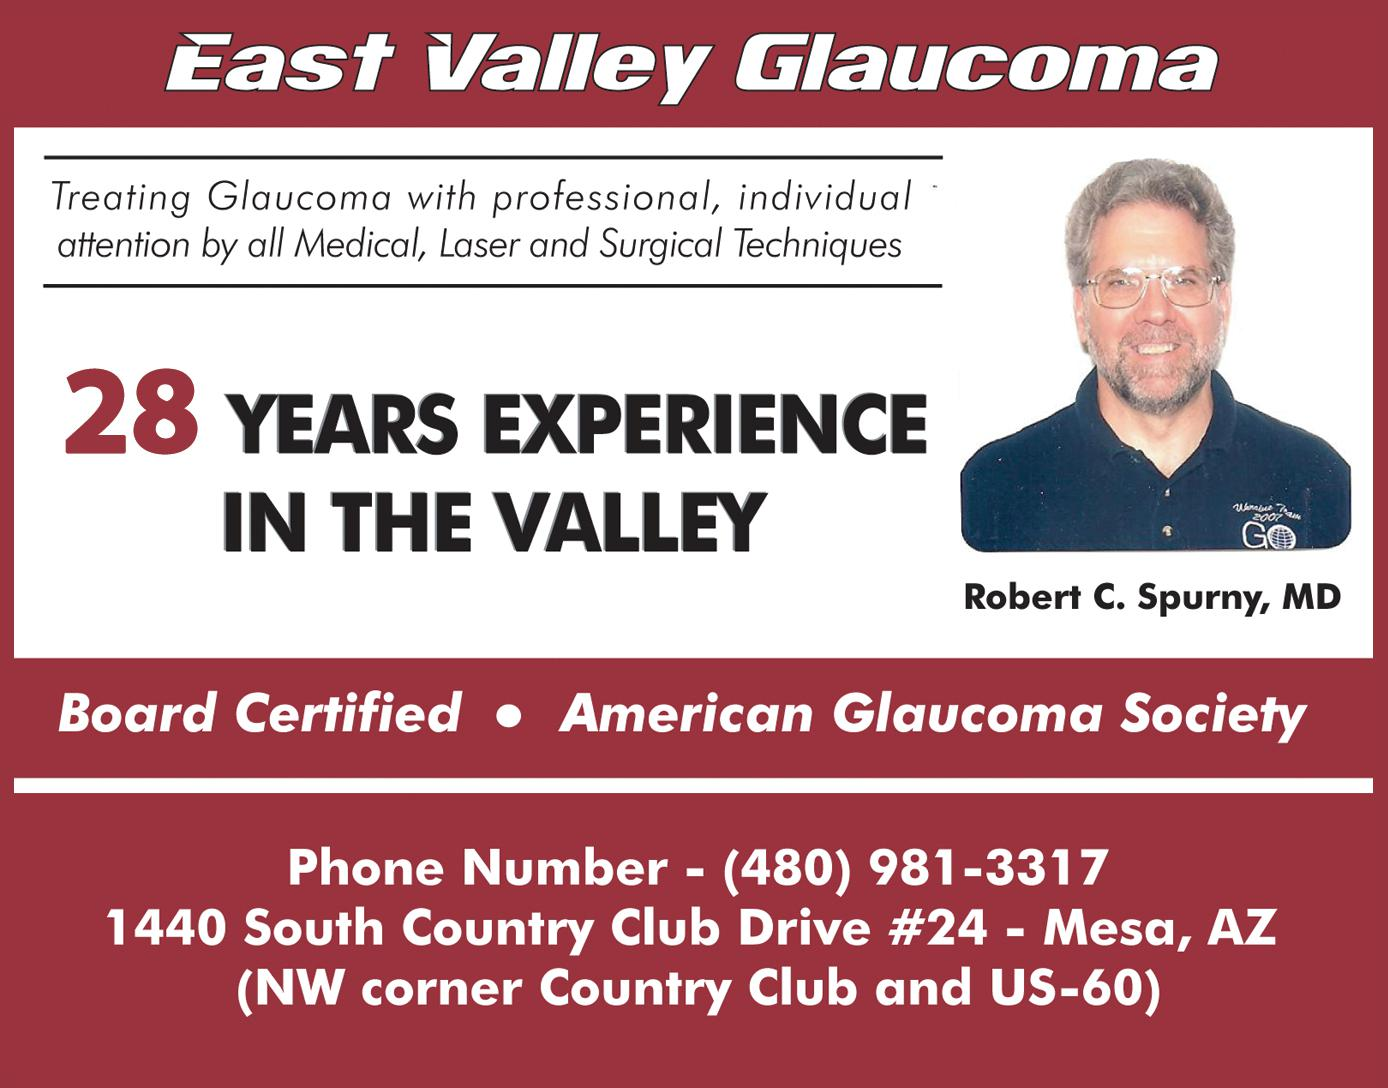 East Valley Glaucoma